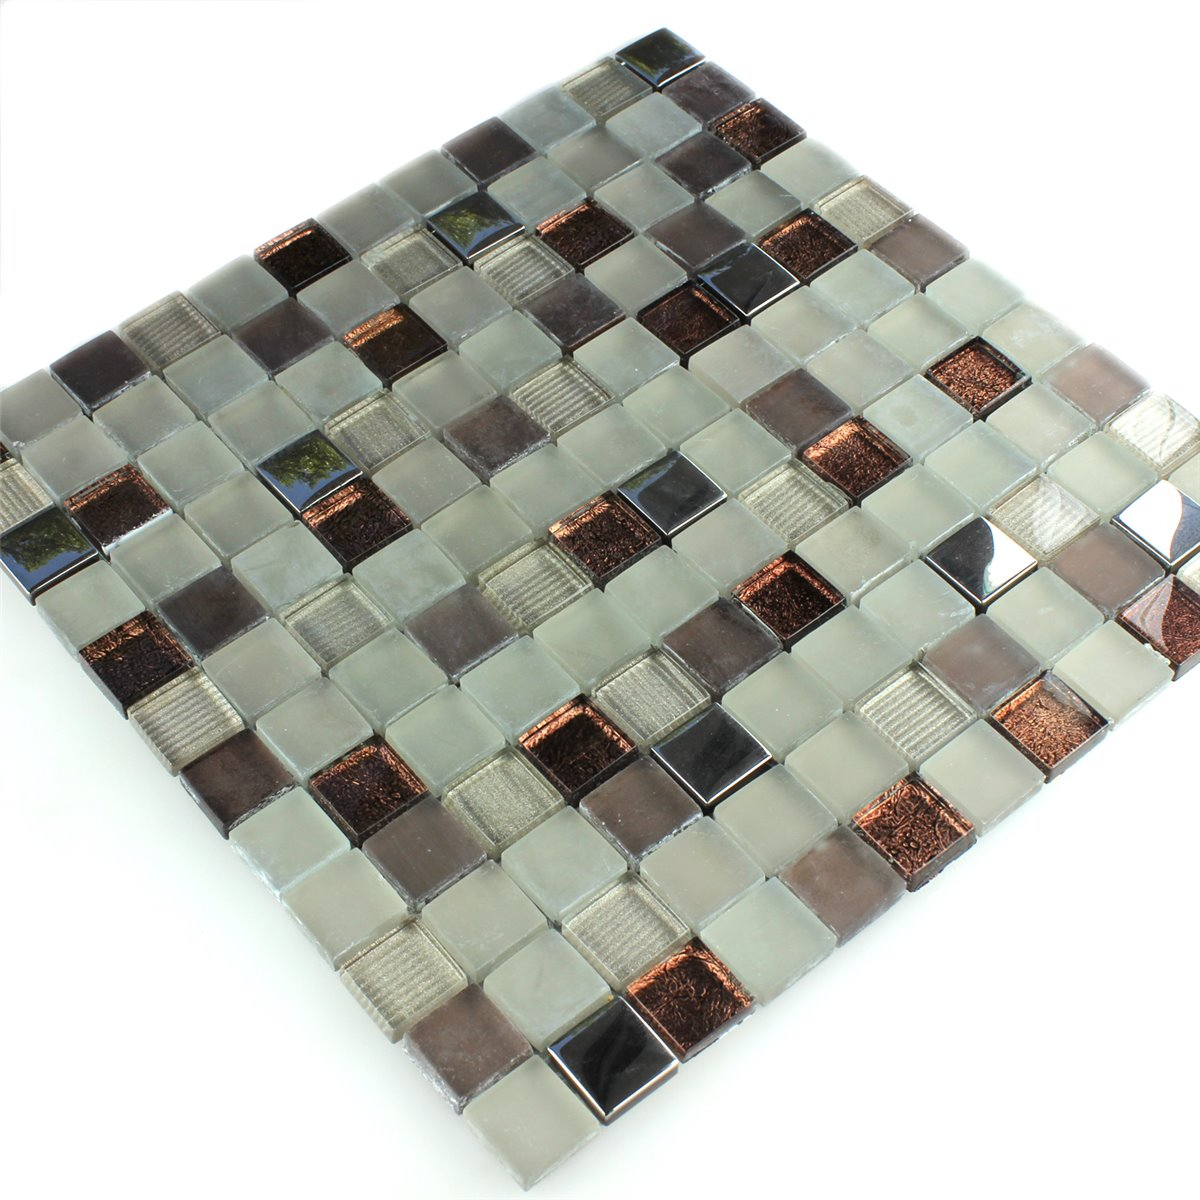 glass mosaic tiles brown beige silver mix fl90054. Black Bedroom Furniture Sets. Home Design Ideas